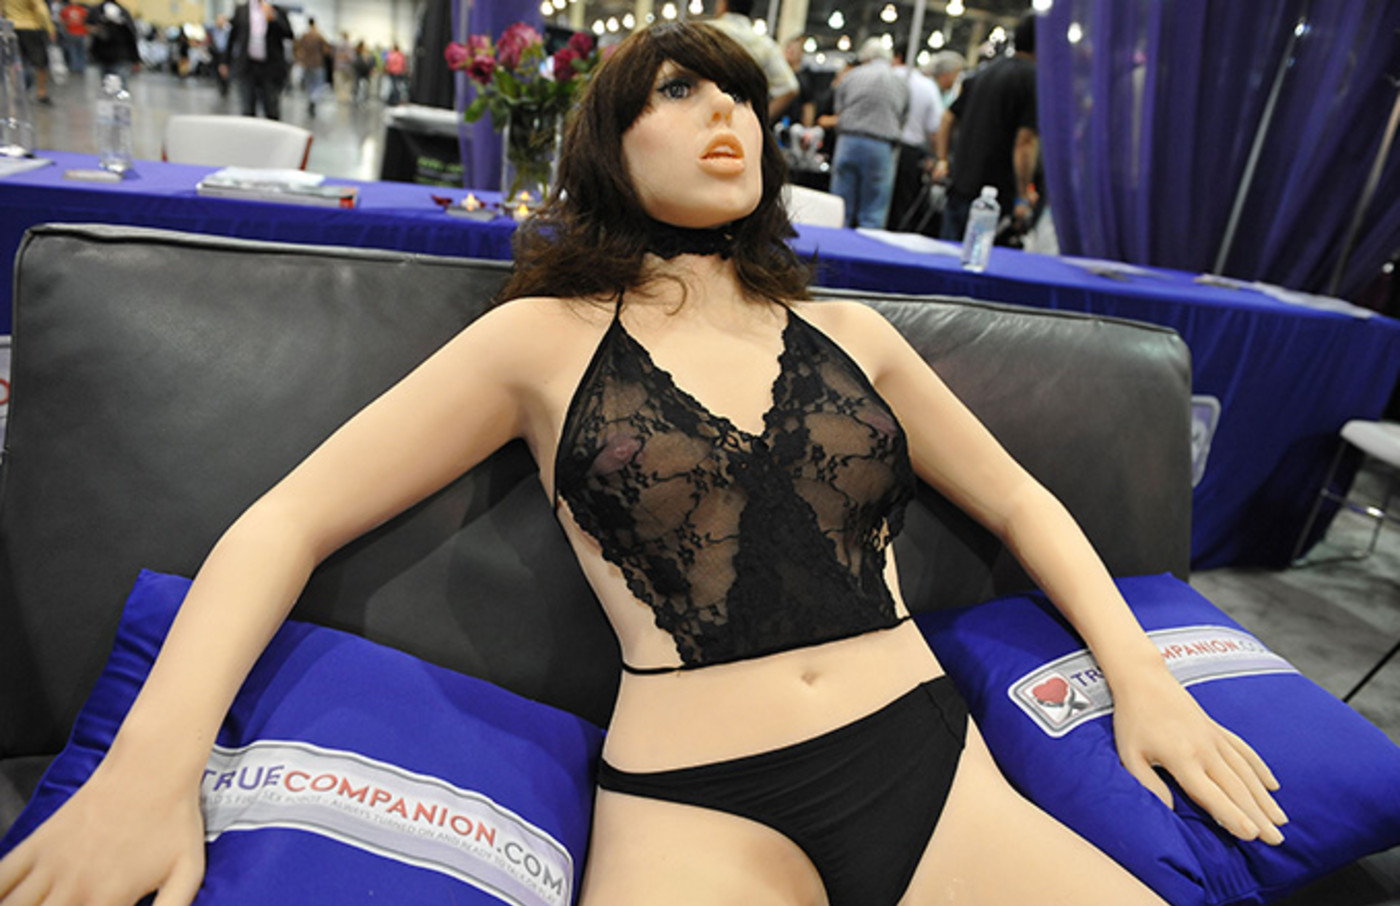 This is a photo of Sex Robots.